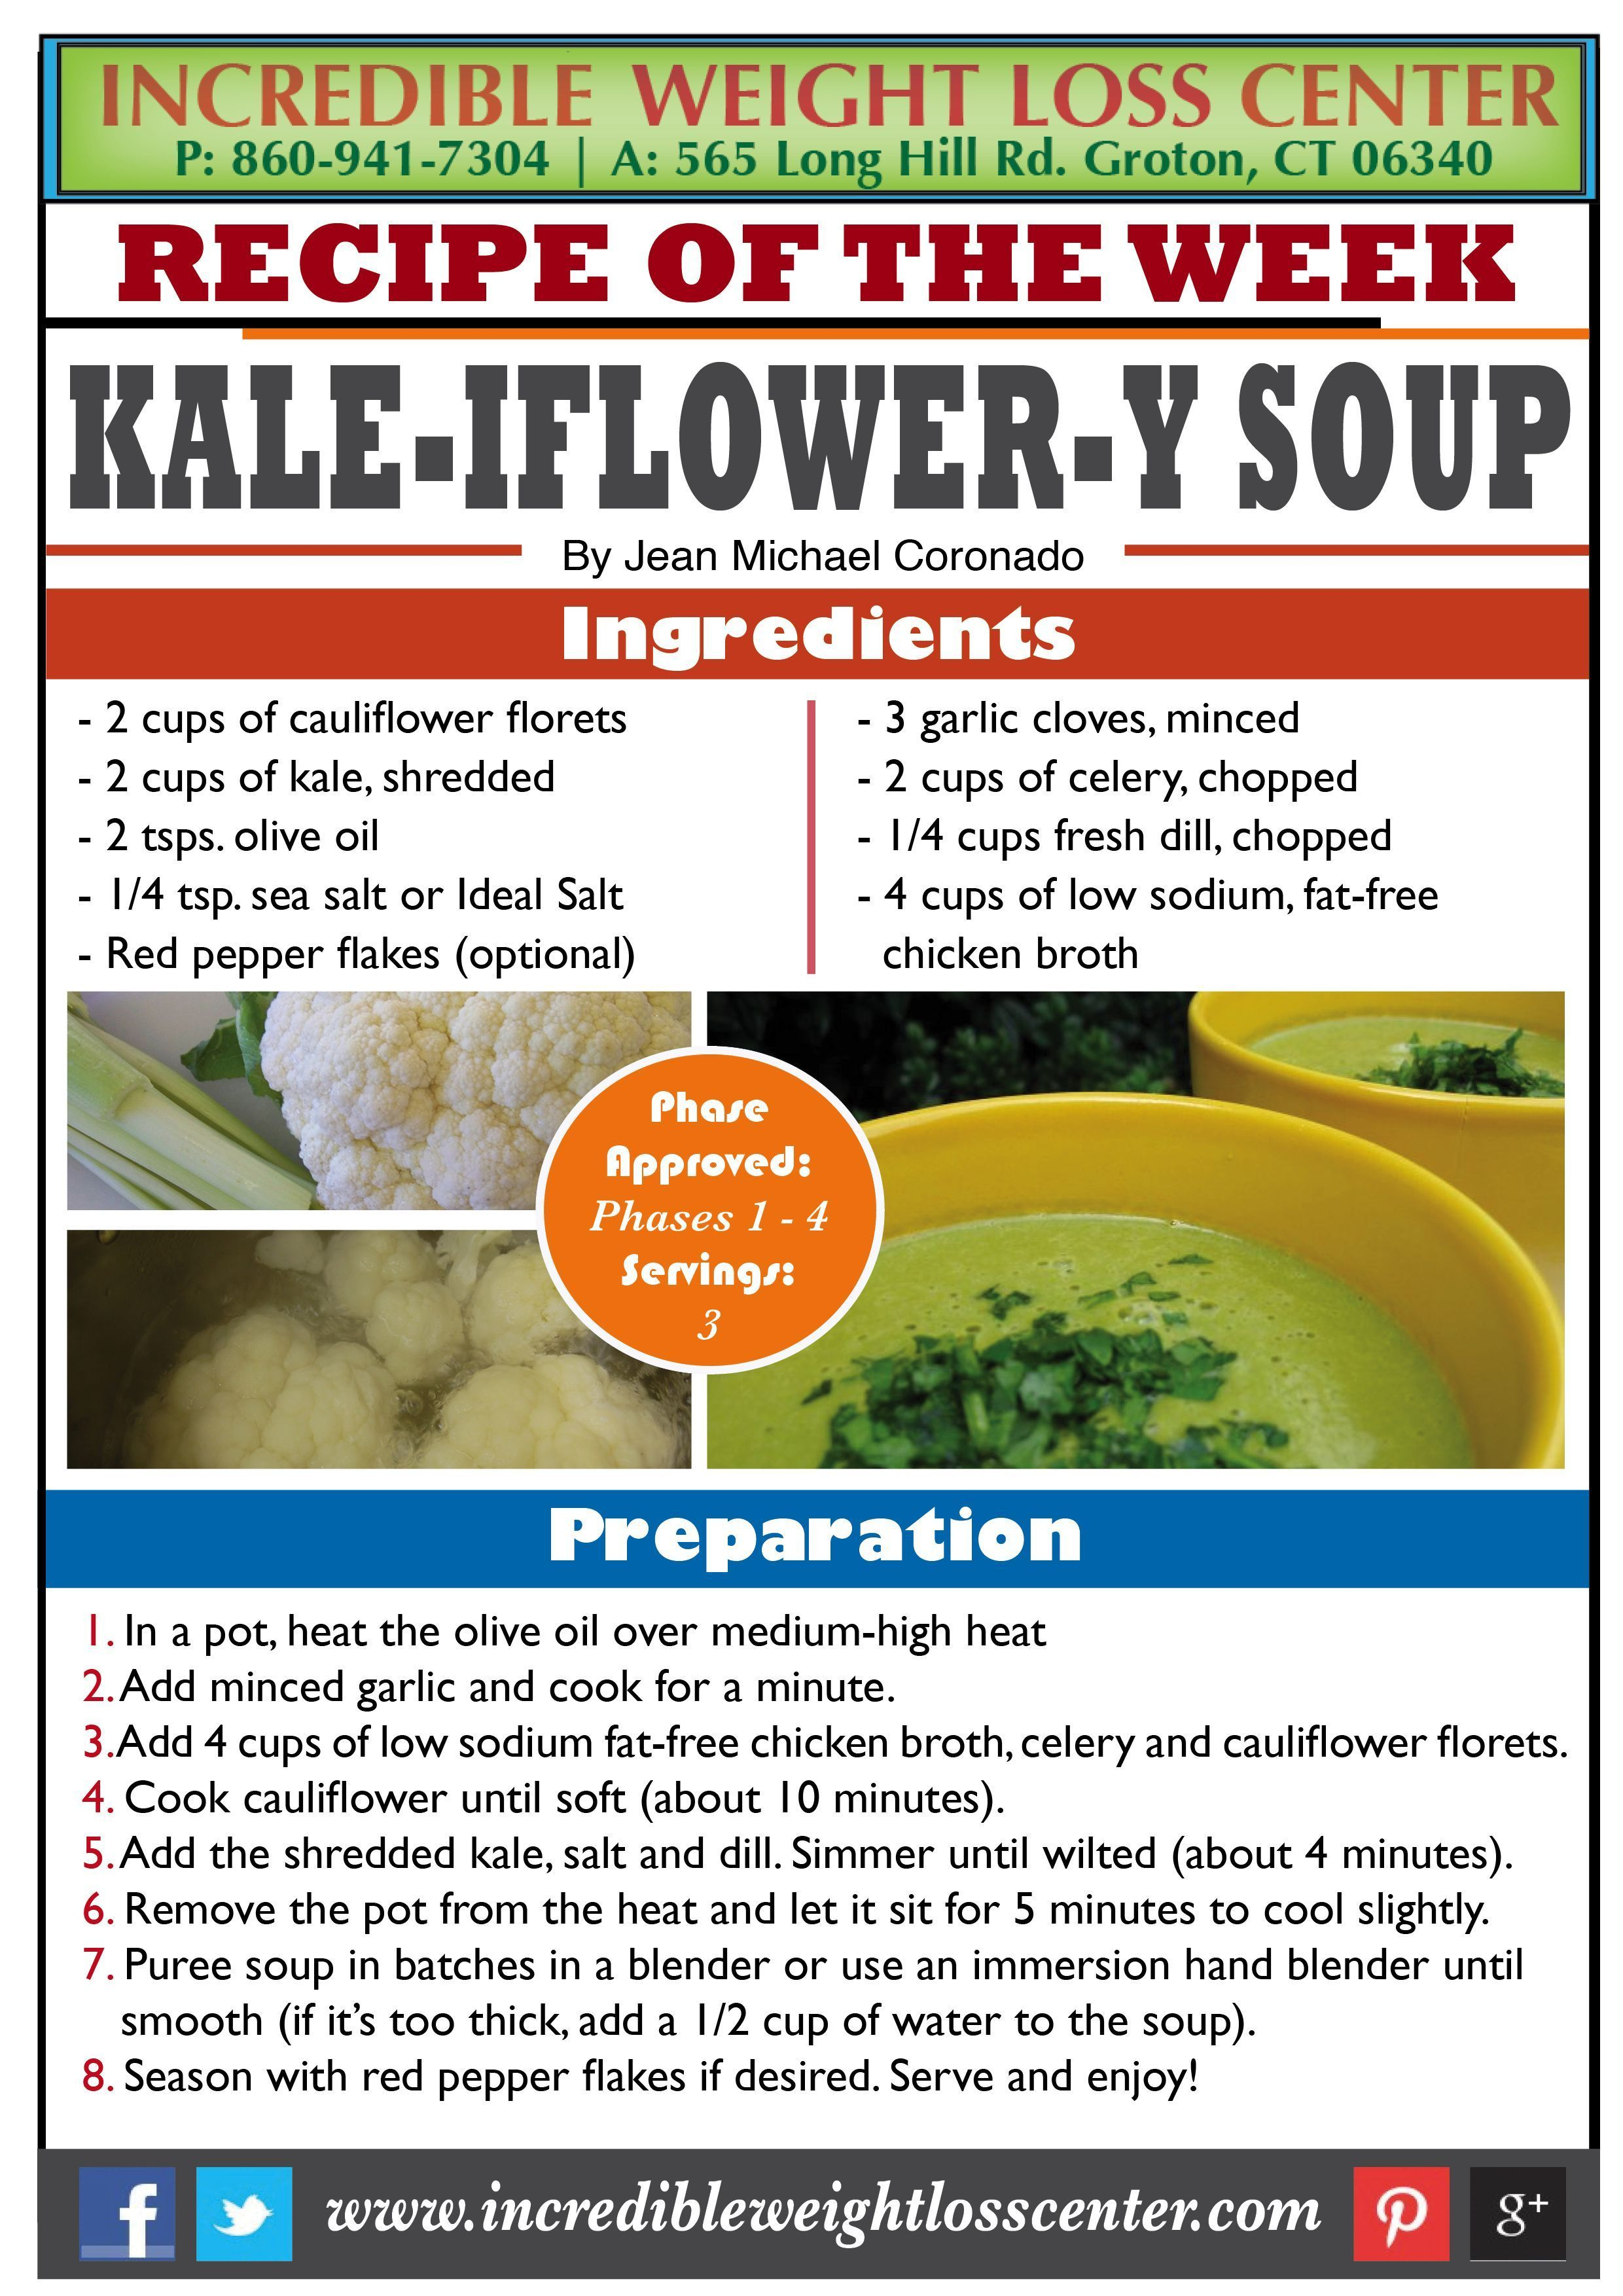 KALE, CAULIFLOWER & CELERY SOUP - PHASE 1 APPROVED  These delicious veggies will make a nutrient-packed soup! Something you can make for those cold days ahead of us.   #Recipe #Phase1Approved #Nutrition #Diet #WeightLoss #Vegetables #IdealProtein #DIY #Healthy #idealproteinrecipesphase1dinner